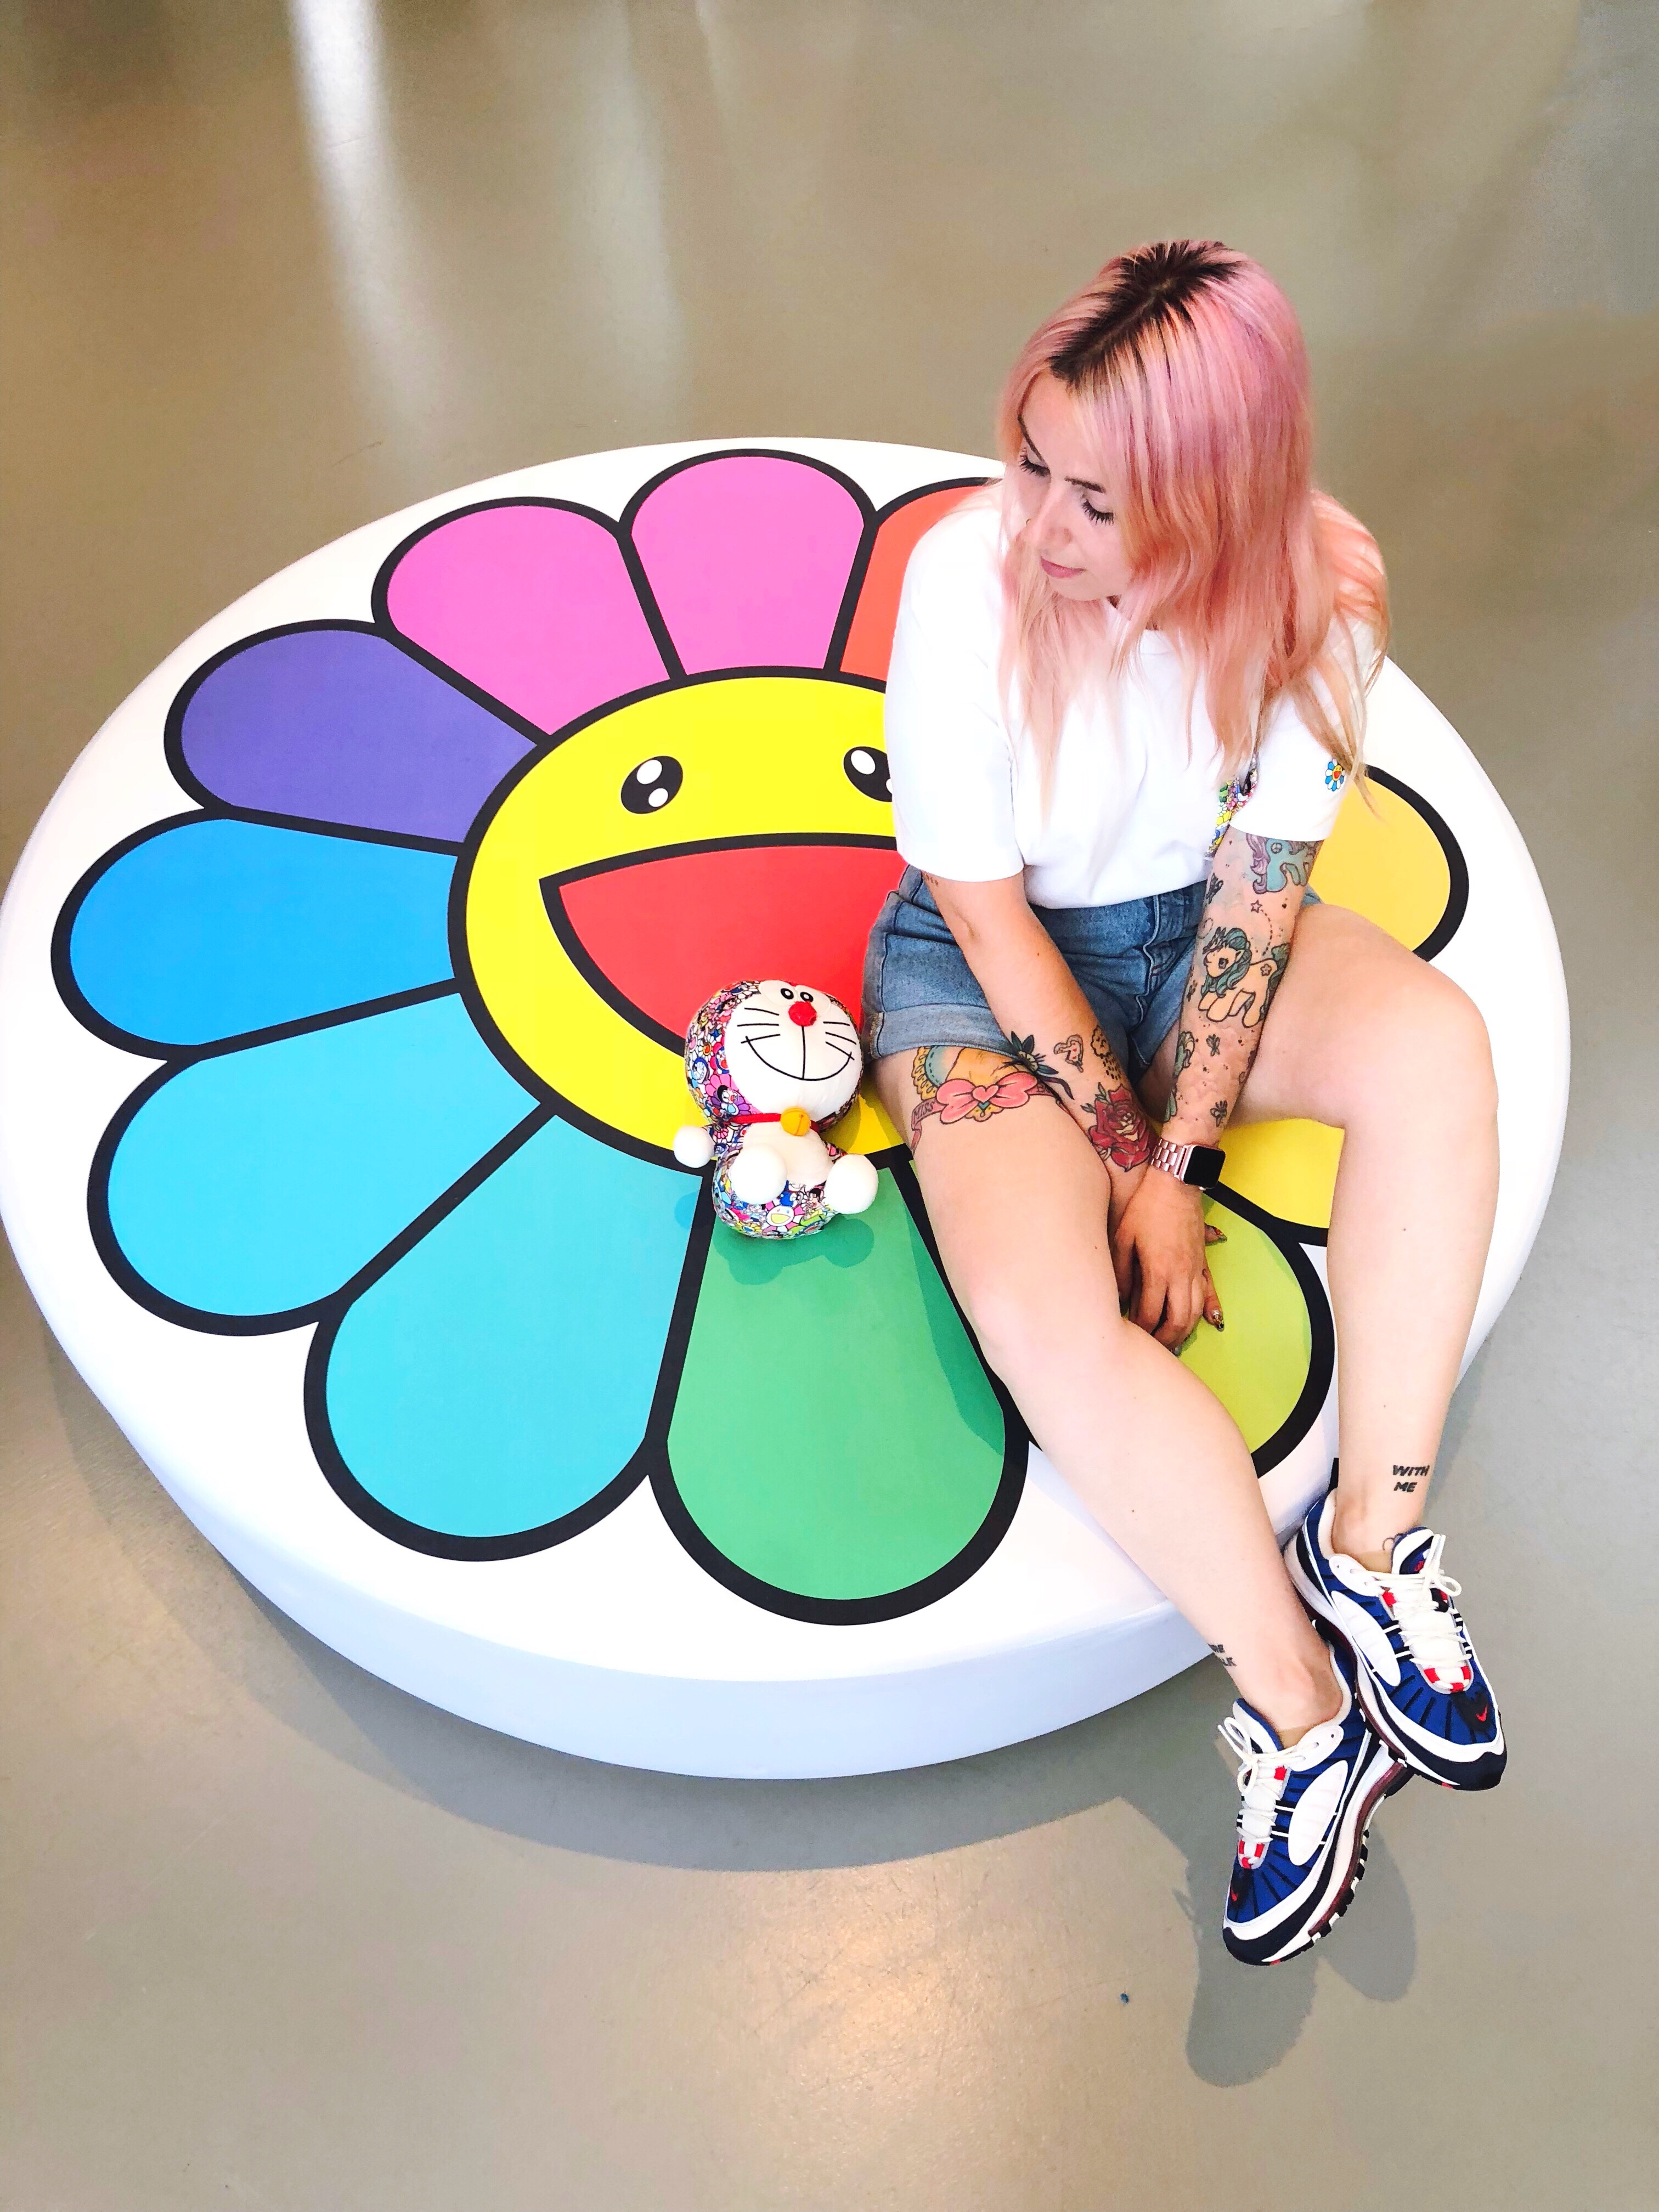 takashi murakami fondation louis vuitton